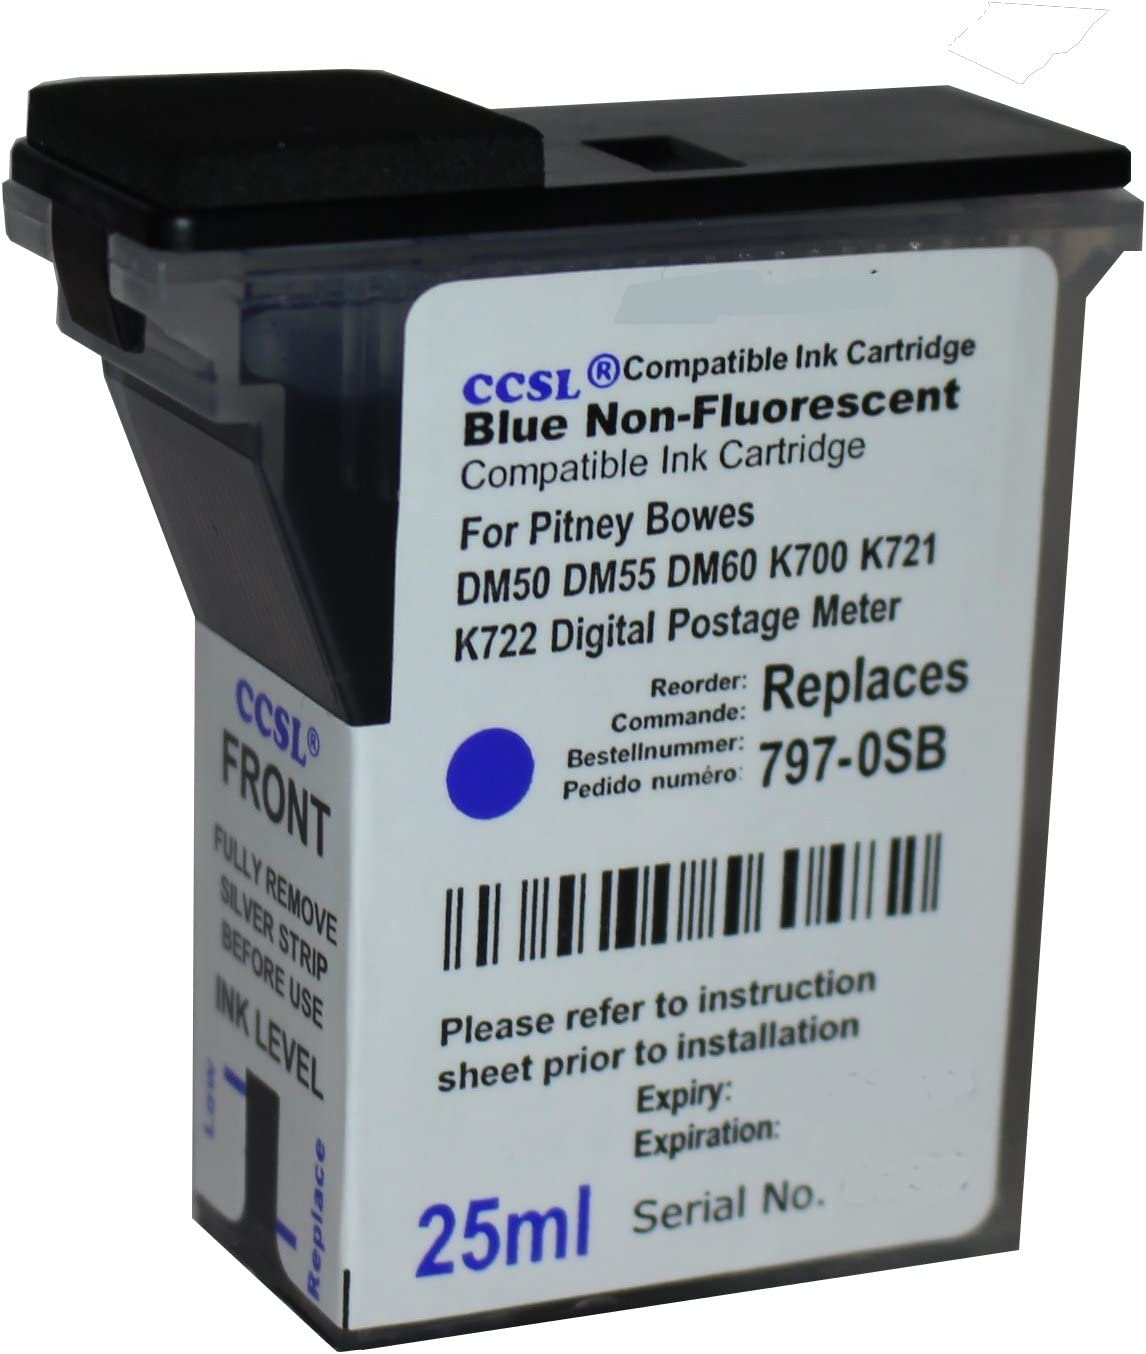 Suitable for DC5550 Powder Box 5550 Black Ink Cartridge Digital Copier Office Supplies Strong Compatibility